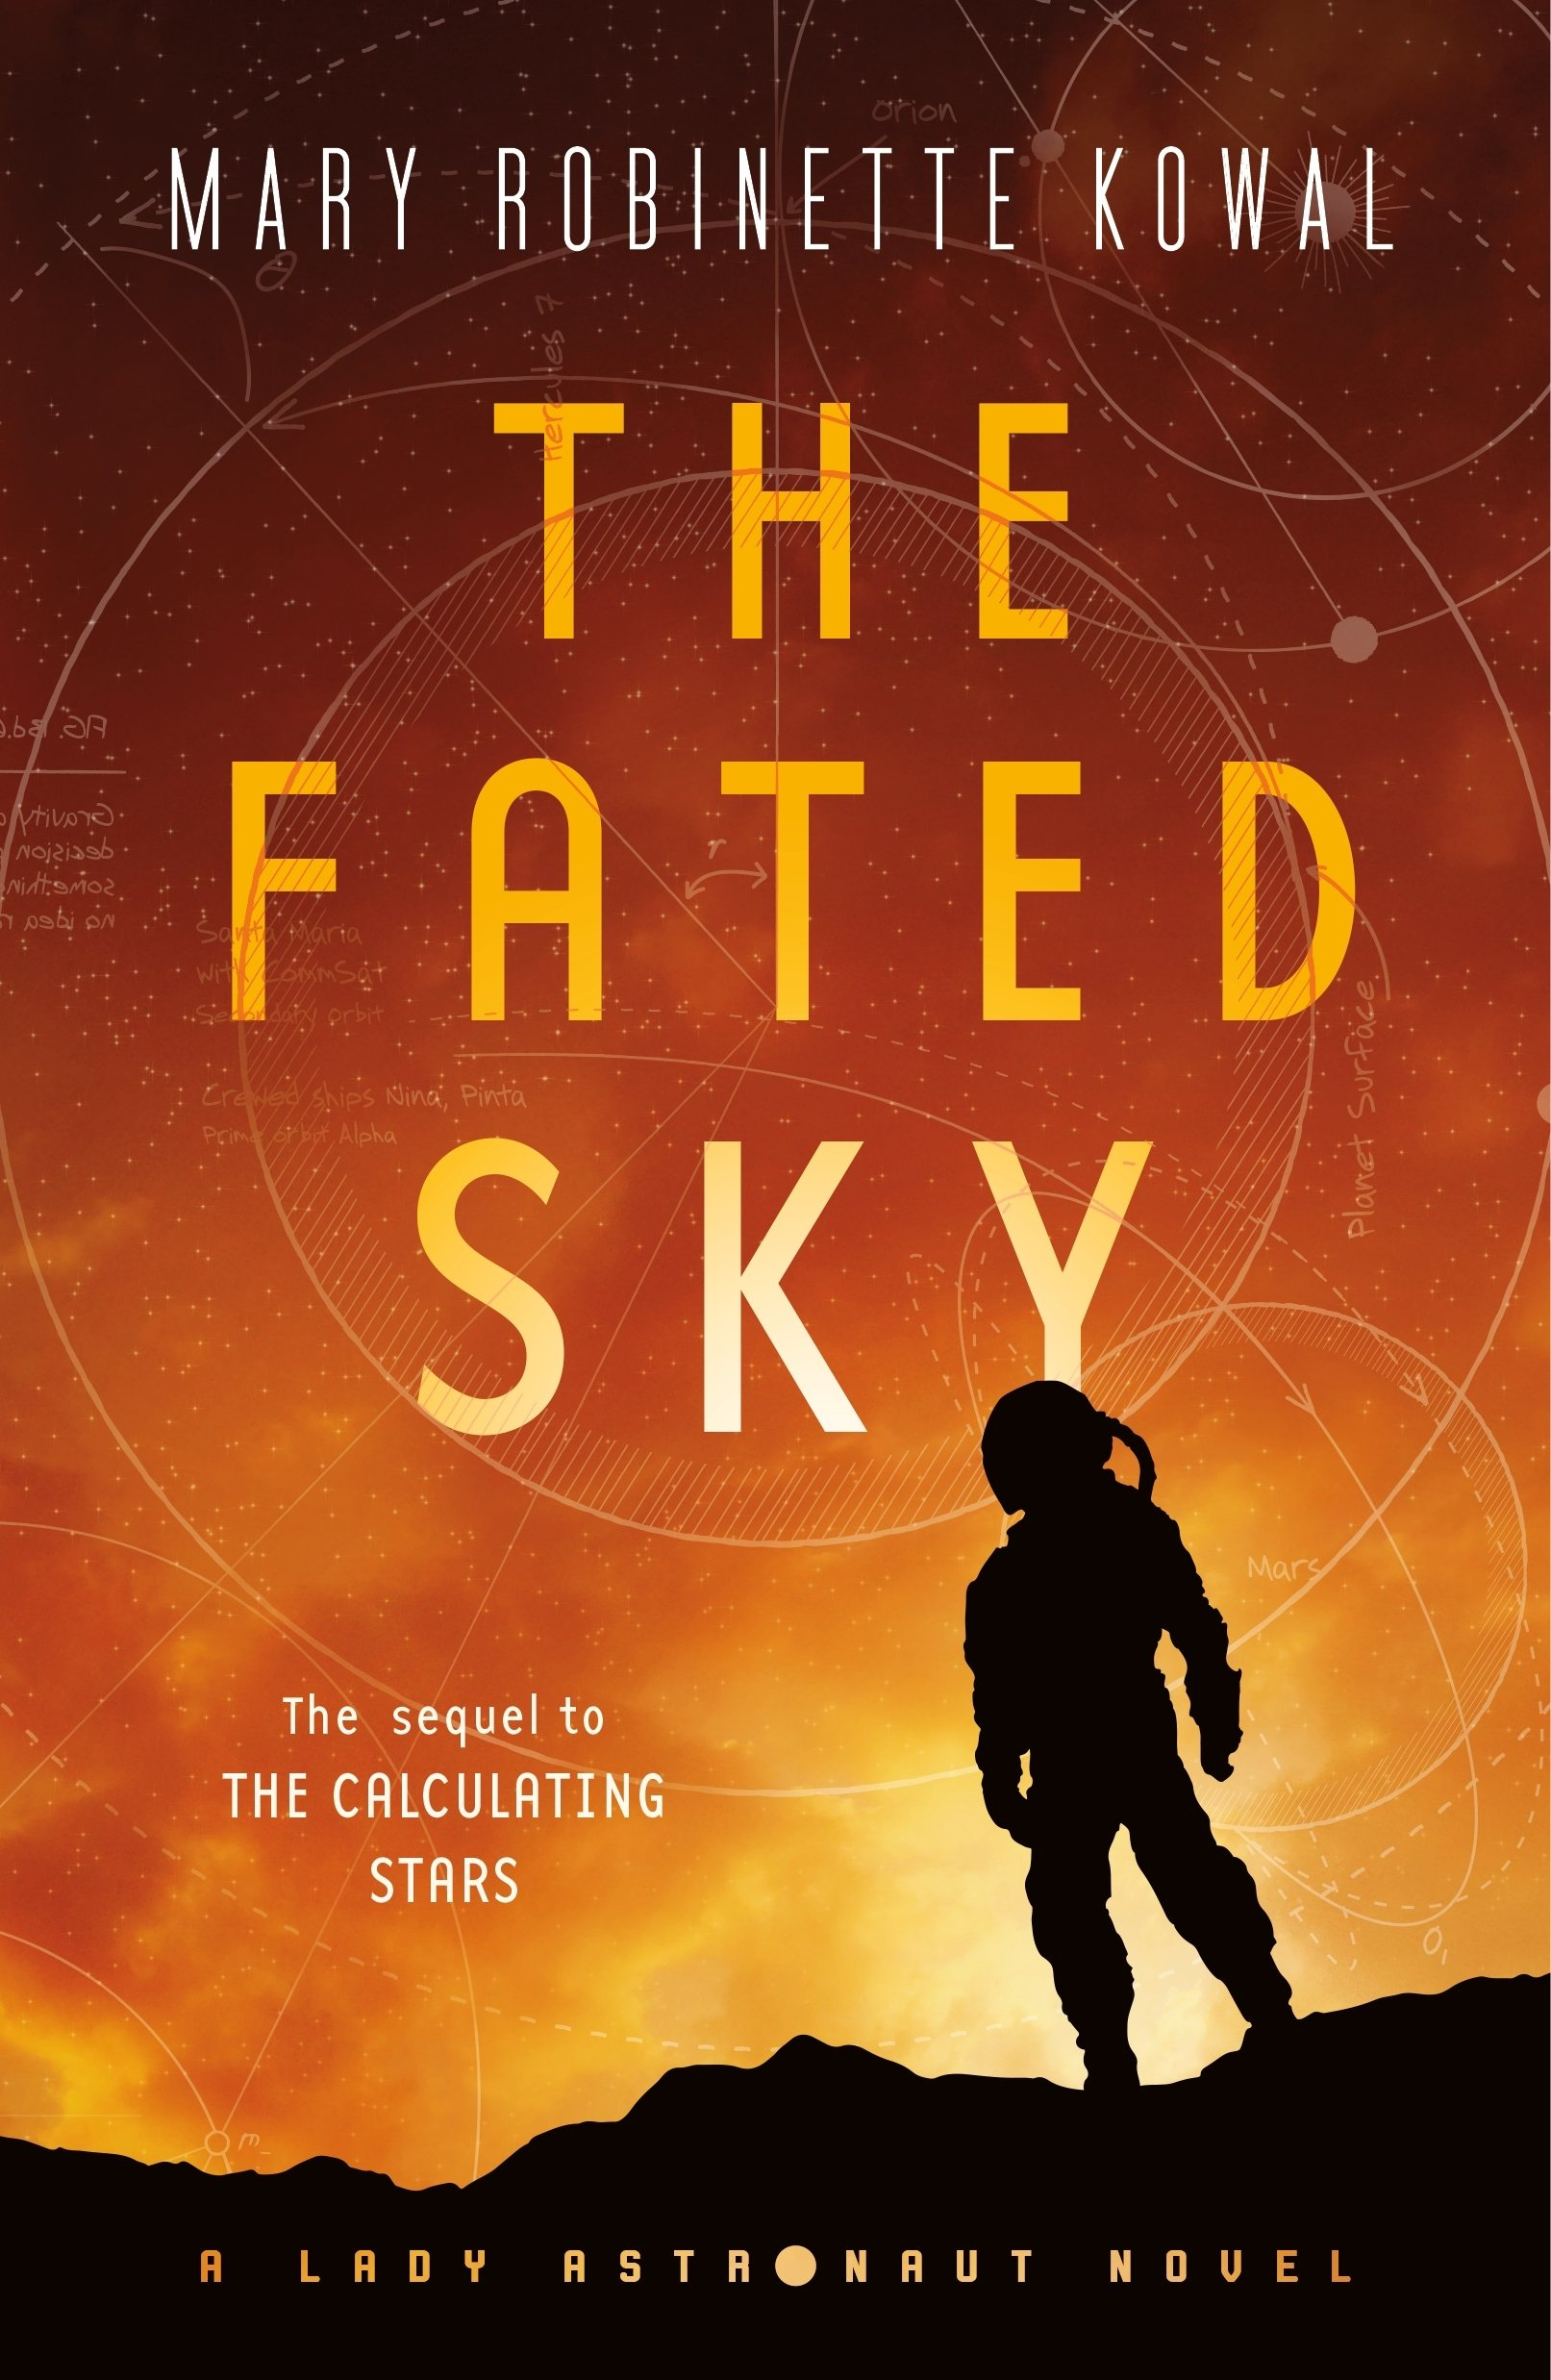 Image result for mary robinette kowal the fated sky